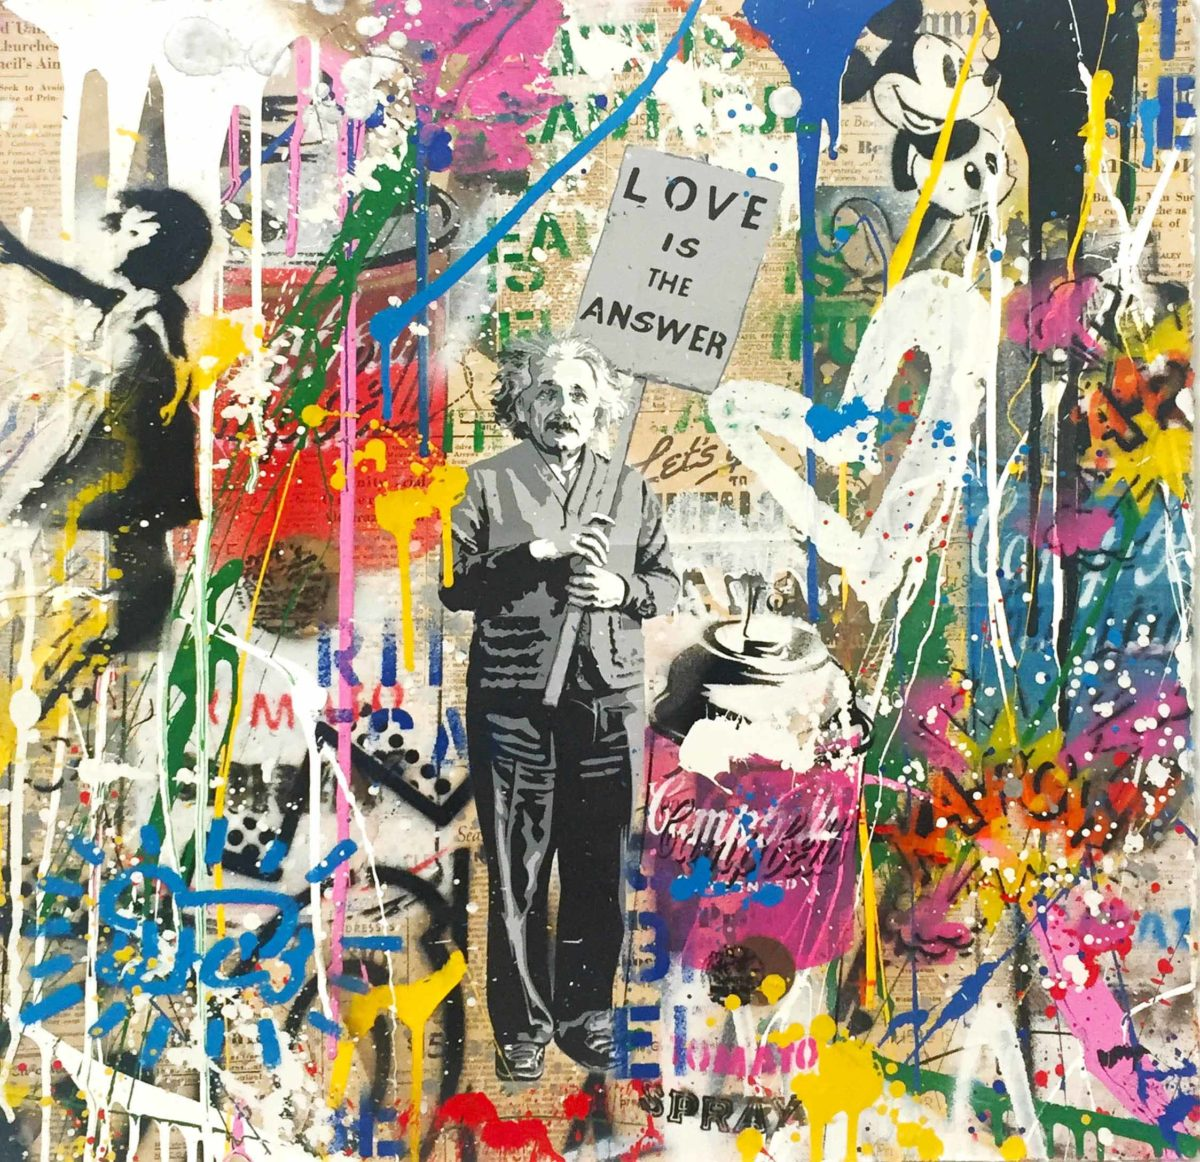 Mr. Brainwash - Einstein - Love is the Answer (22 x 22)